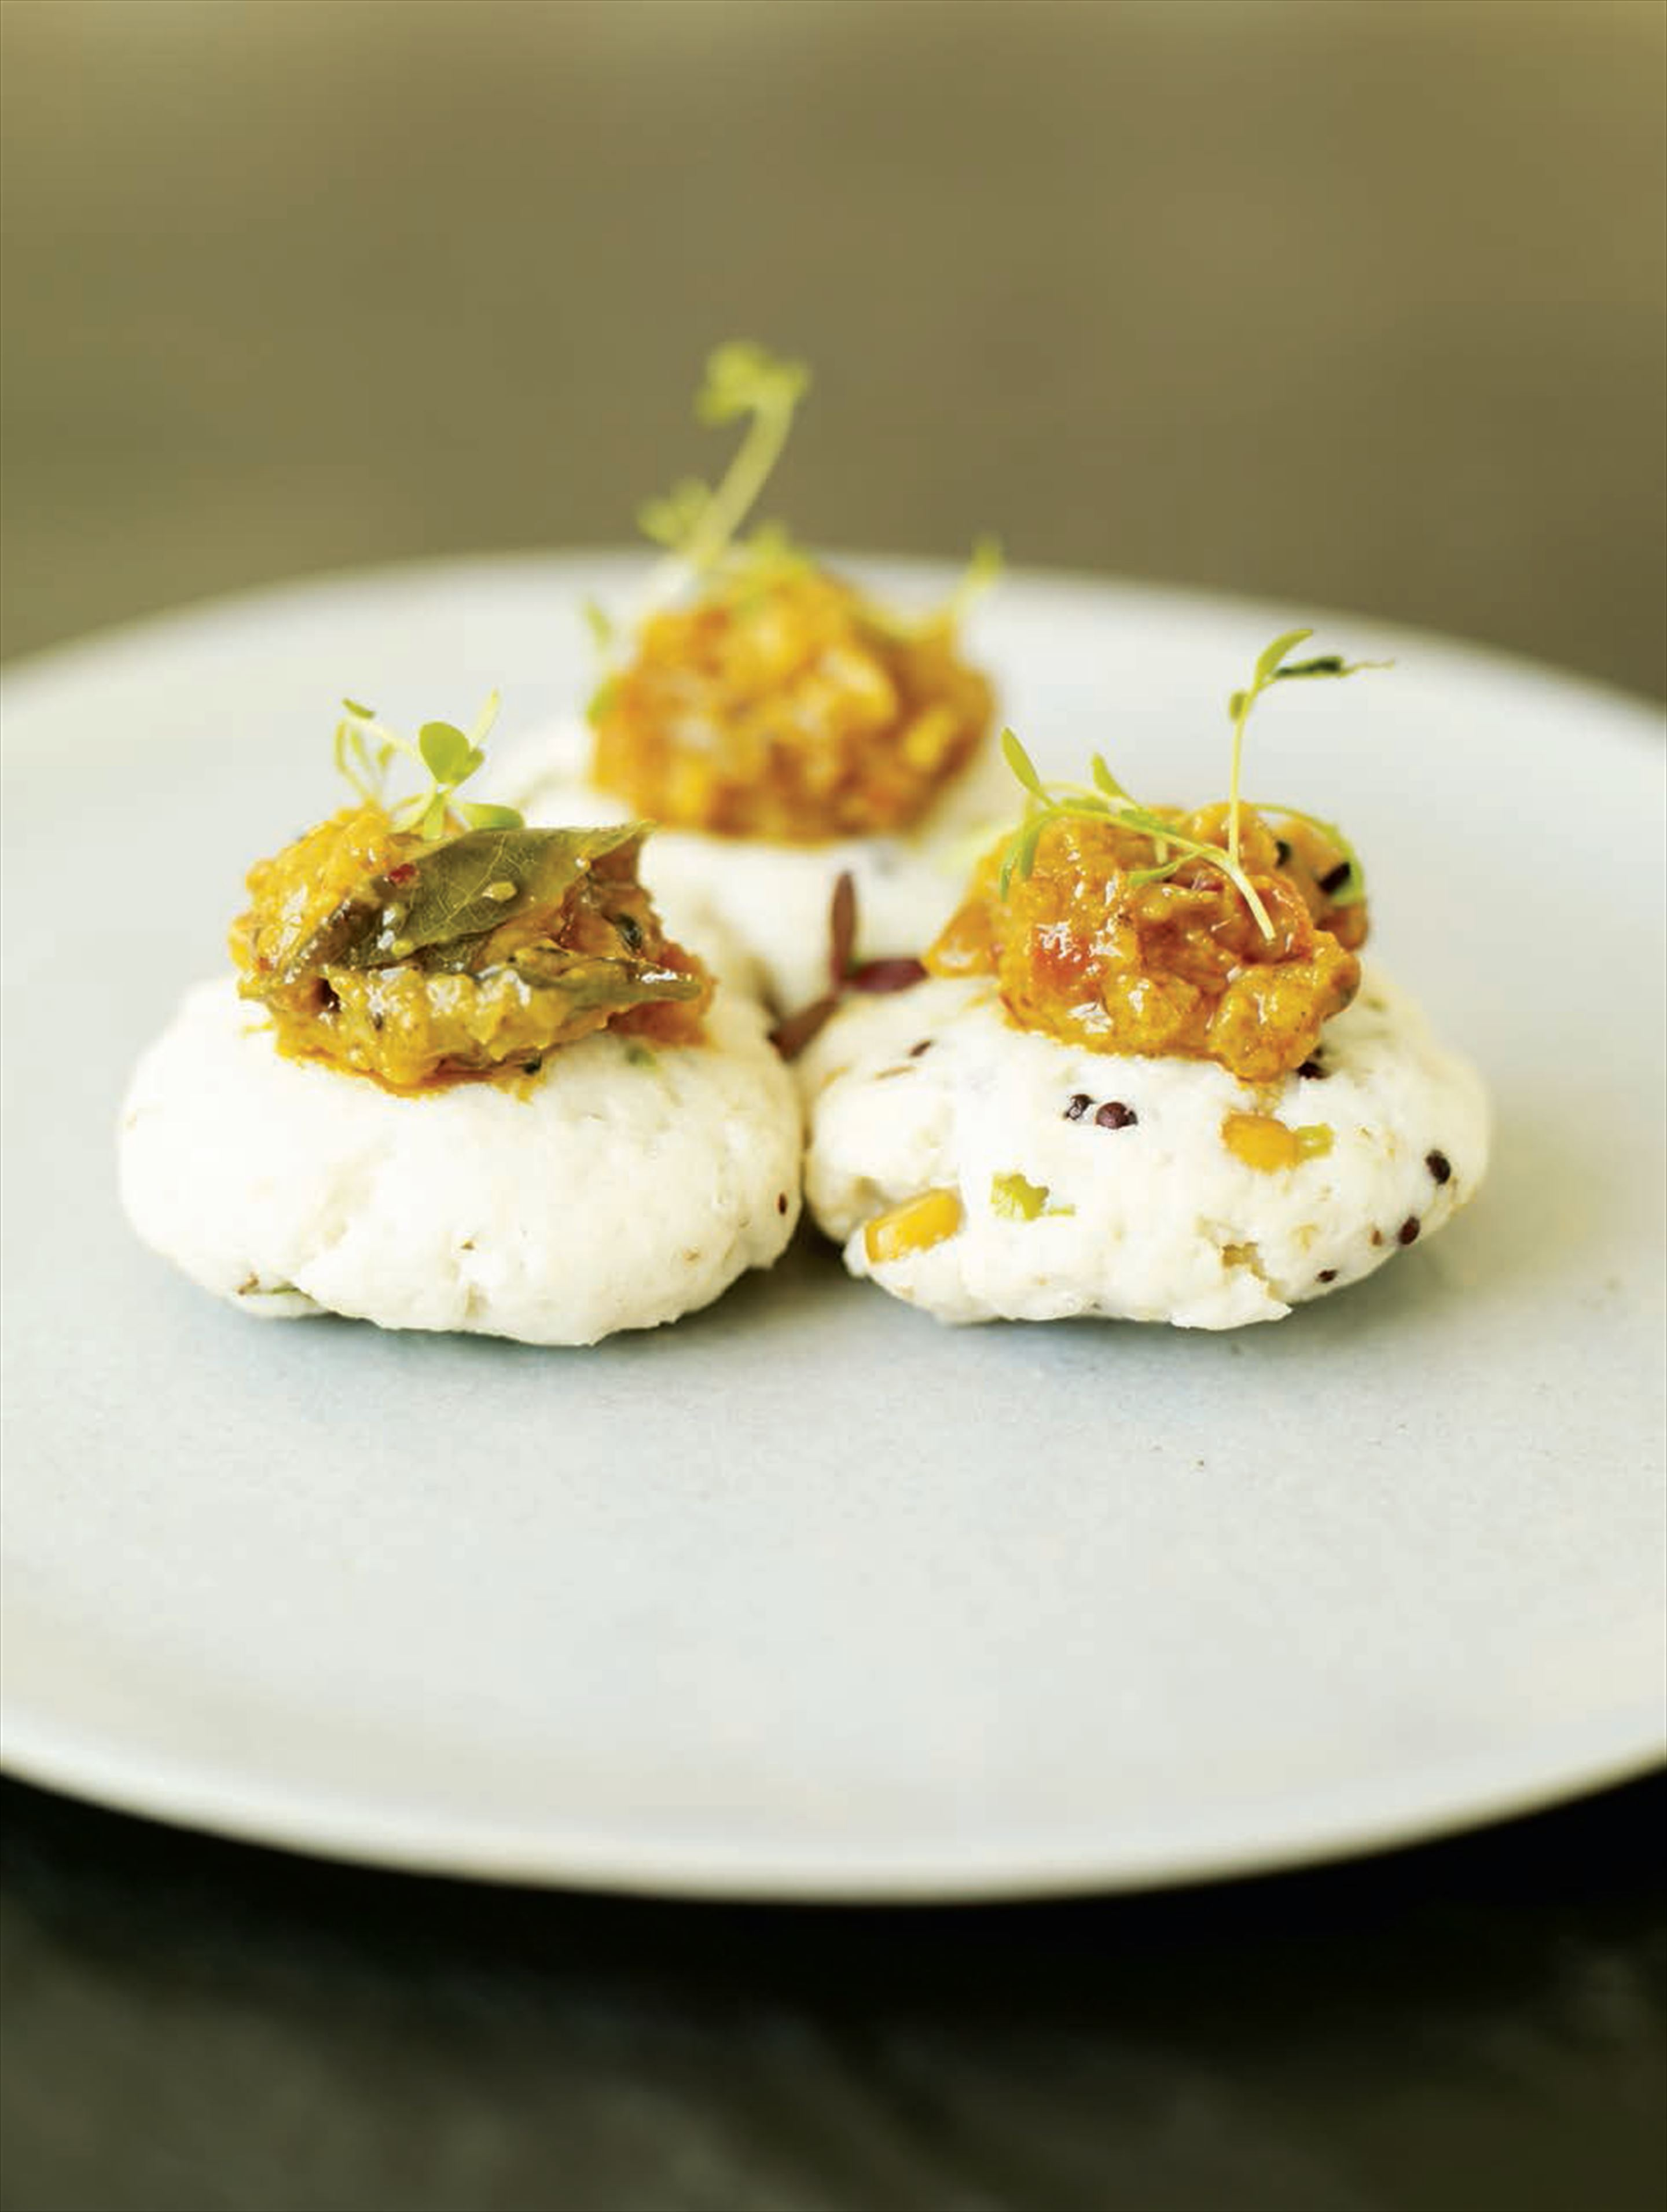 Steamed pollack cakes with tomato, coriander and peanut chutney